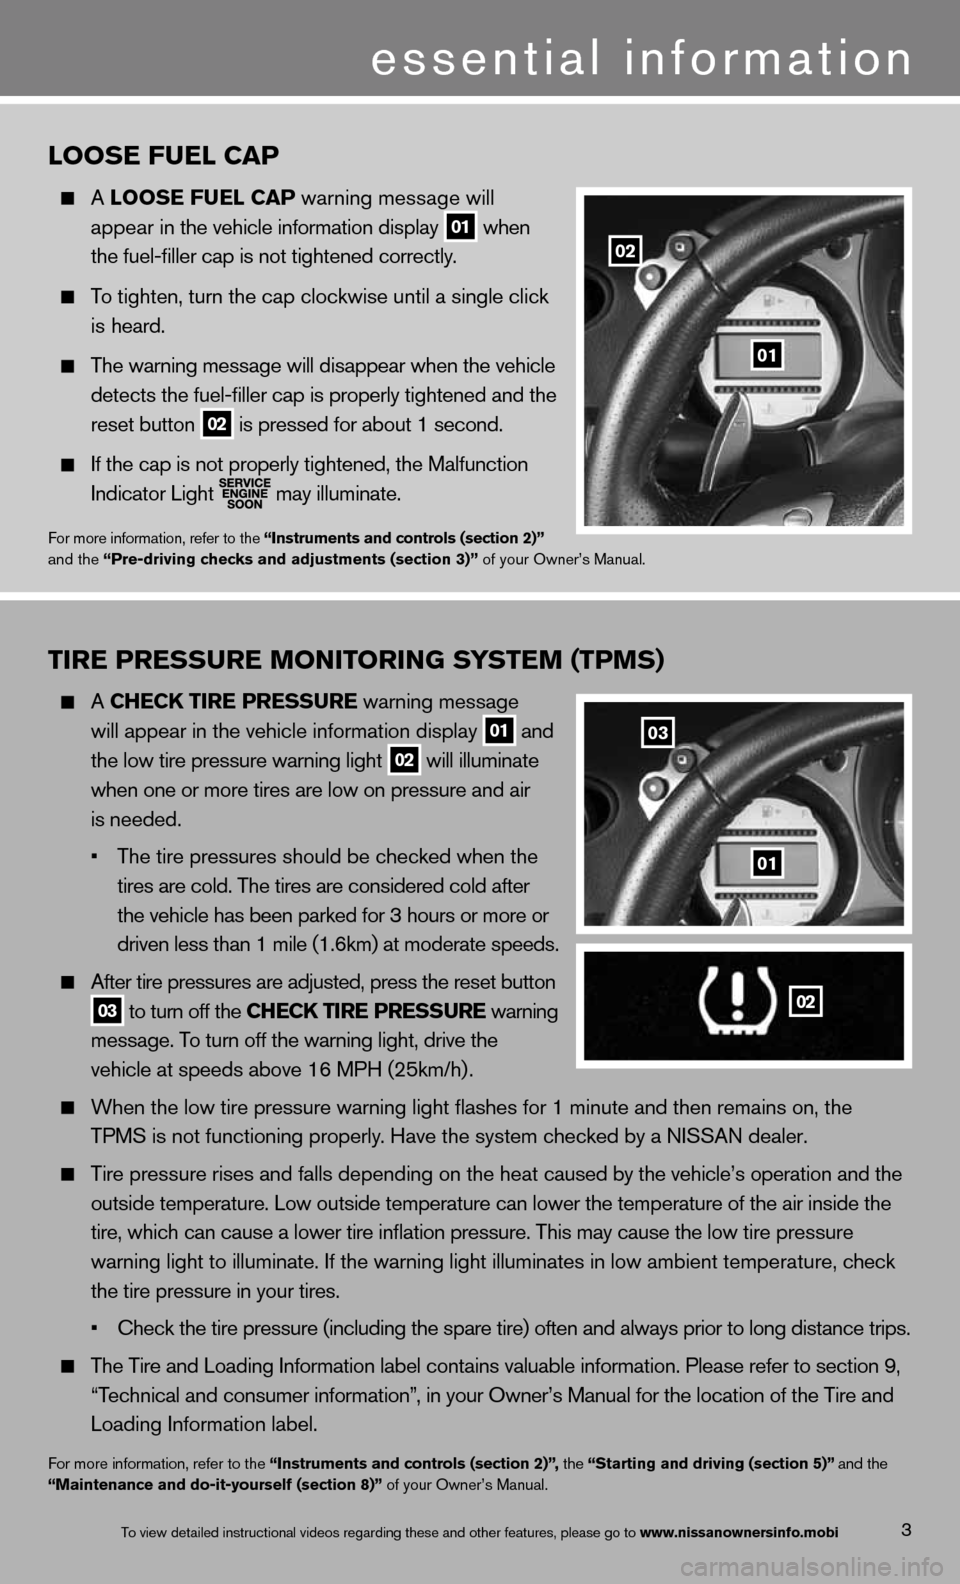 NISSAN 370Z ROADSTER 2013 Z34 Quick Reference Guide 3 TIRE PRESSURE MONITORING SYSTEM (TPMS)   A CHECk TIRE PRESSURE warning message      will  appear in \fhe vehic\mle informa\fion disp\mlay  01 and      \fhe low \fire pressu\mre warning ligh\f 02 wil